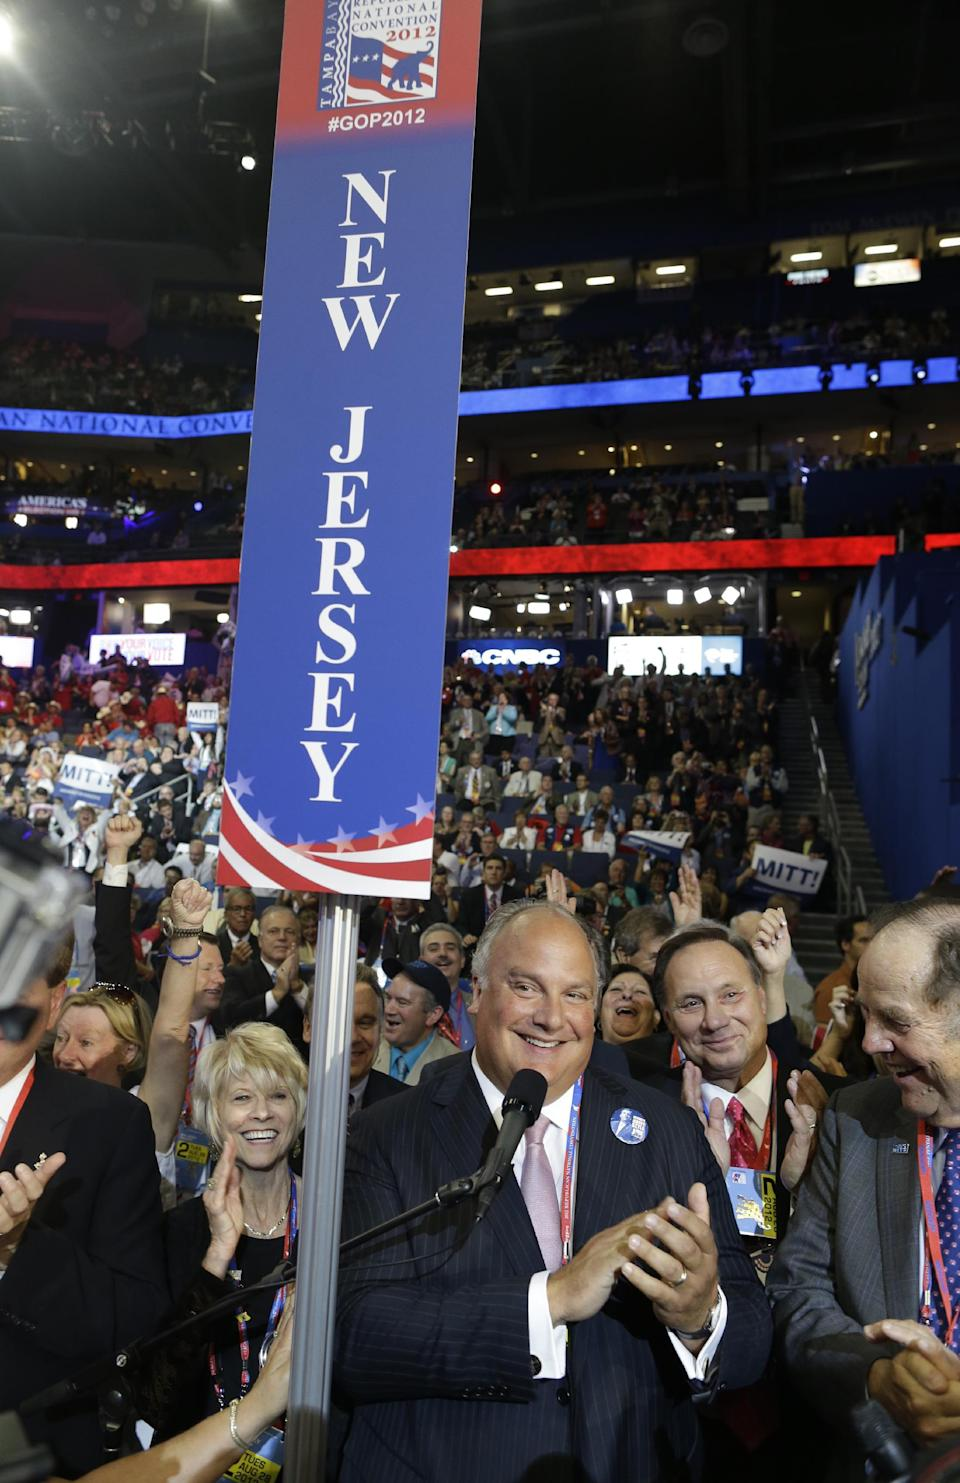 Todd J. Christie, brother of New Jersey Gov. Chris Christie speaks at the Republican National Convention as Mitt Romney is nominated by the state delegates for the Office of the President of the United States in Tampa, Fla., on Tuesday, Aug. 28, 2012. (AP Photo/Charles Dharapak)